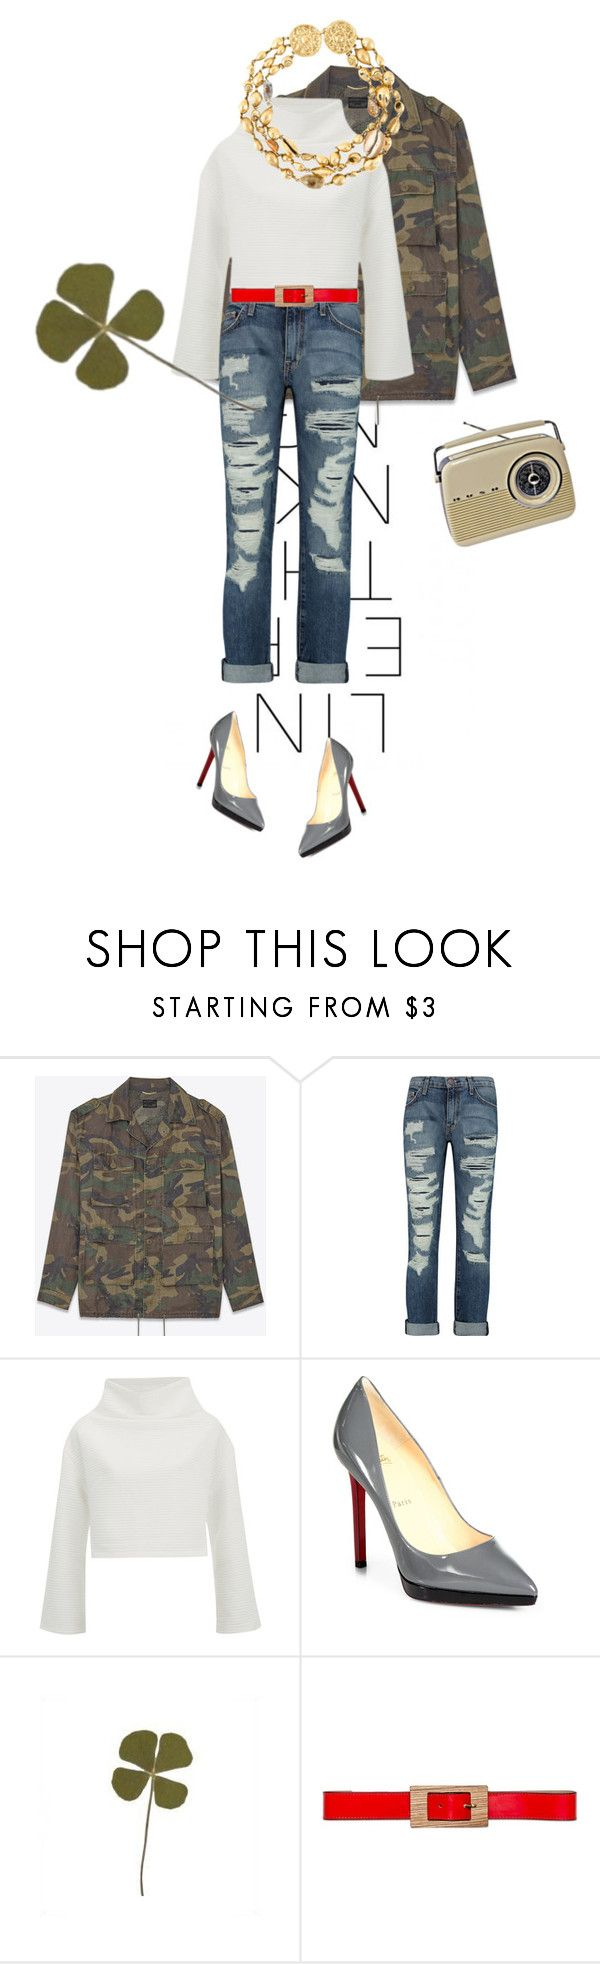 """""""I hear mariachi static on my radio"""" by misnik ❤ liked on Polyvore featuring Yves Saint Laurent, Current/Elliott, Christian Louboutin, Marni, women's clothing, women, female, woman, misses and juniors"""